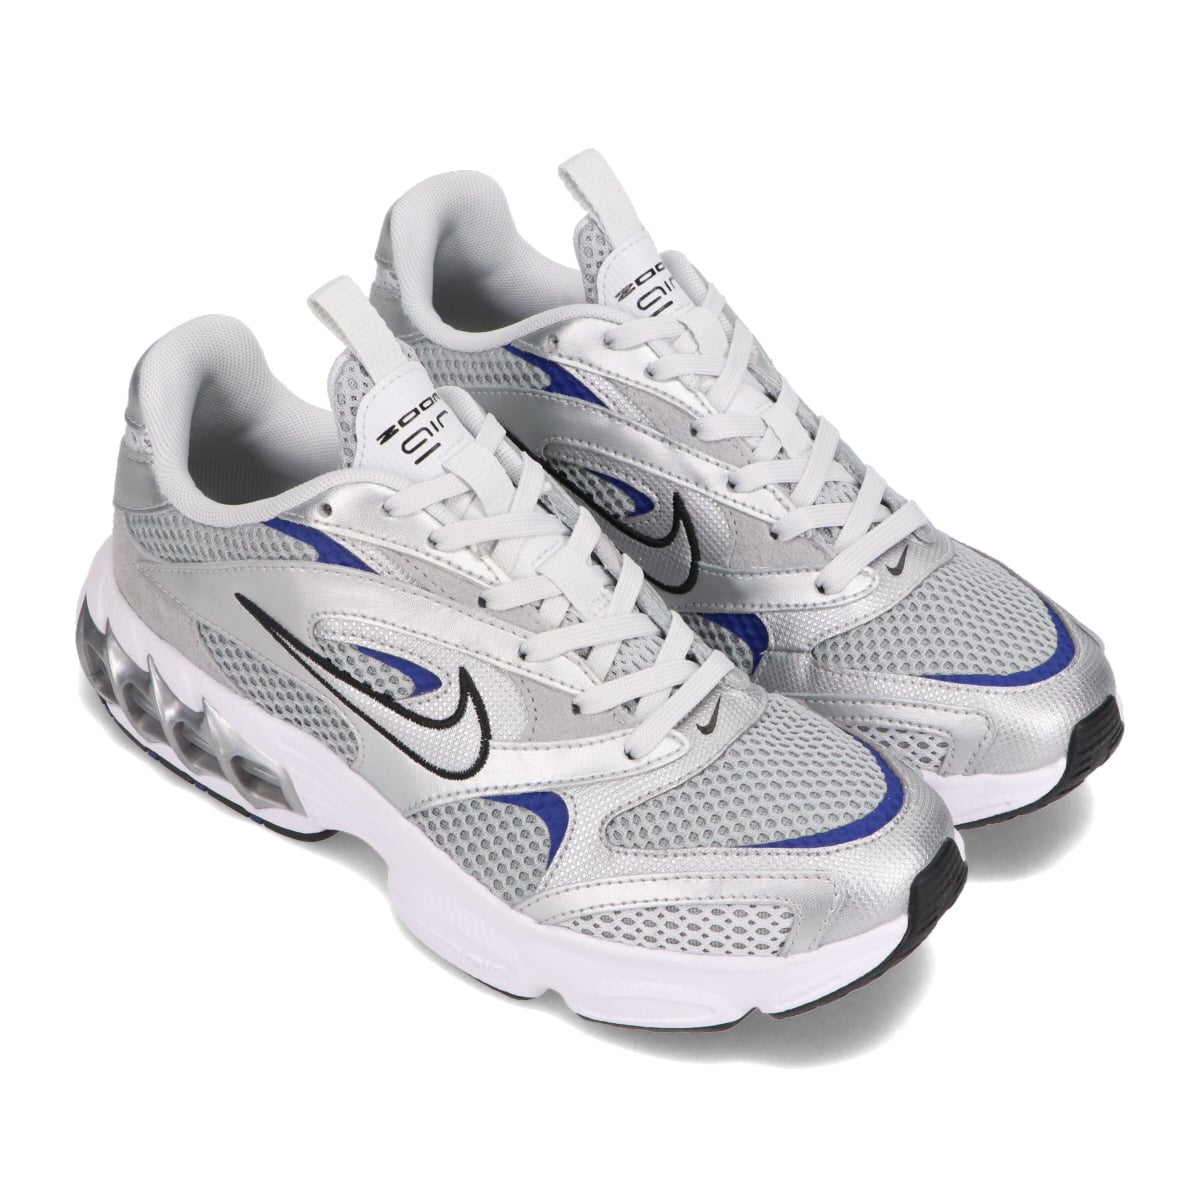 NIKE W ZOOM AIR FIRE LT SMOKE GREY/METALLIC SILVER-SMOKE GREY 21SP-I_photo_large